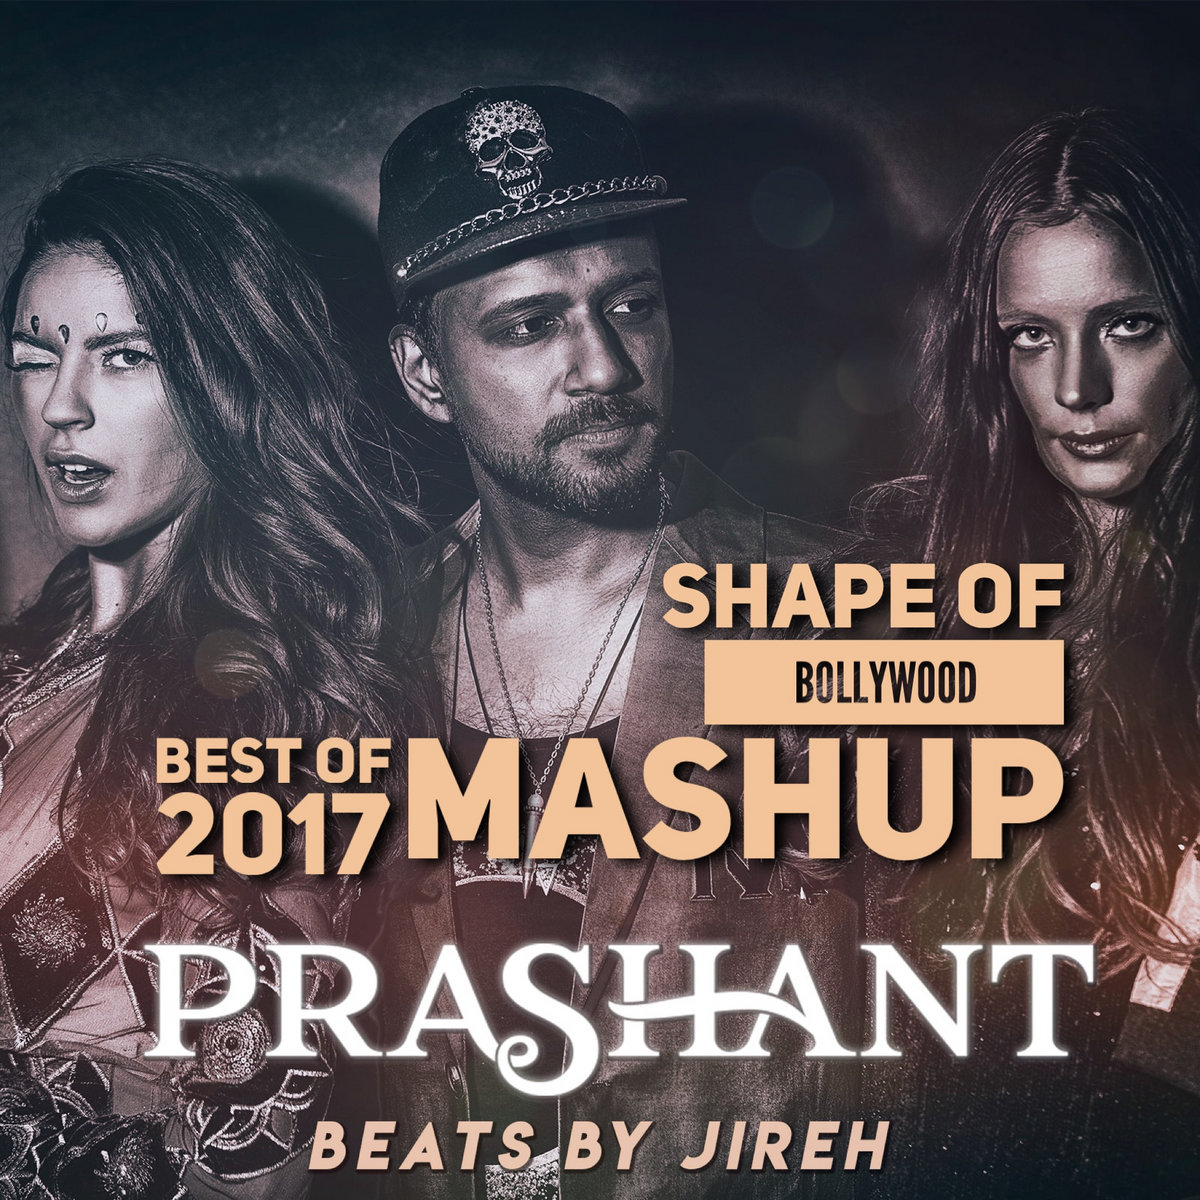 Shape of Bollywood | Best of 2017 Mashup | DJ Prashant